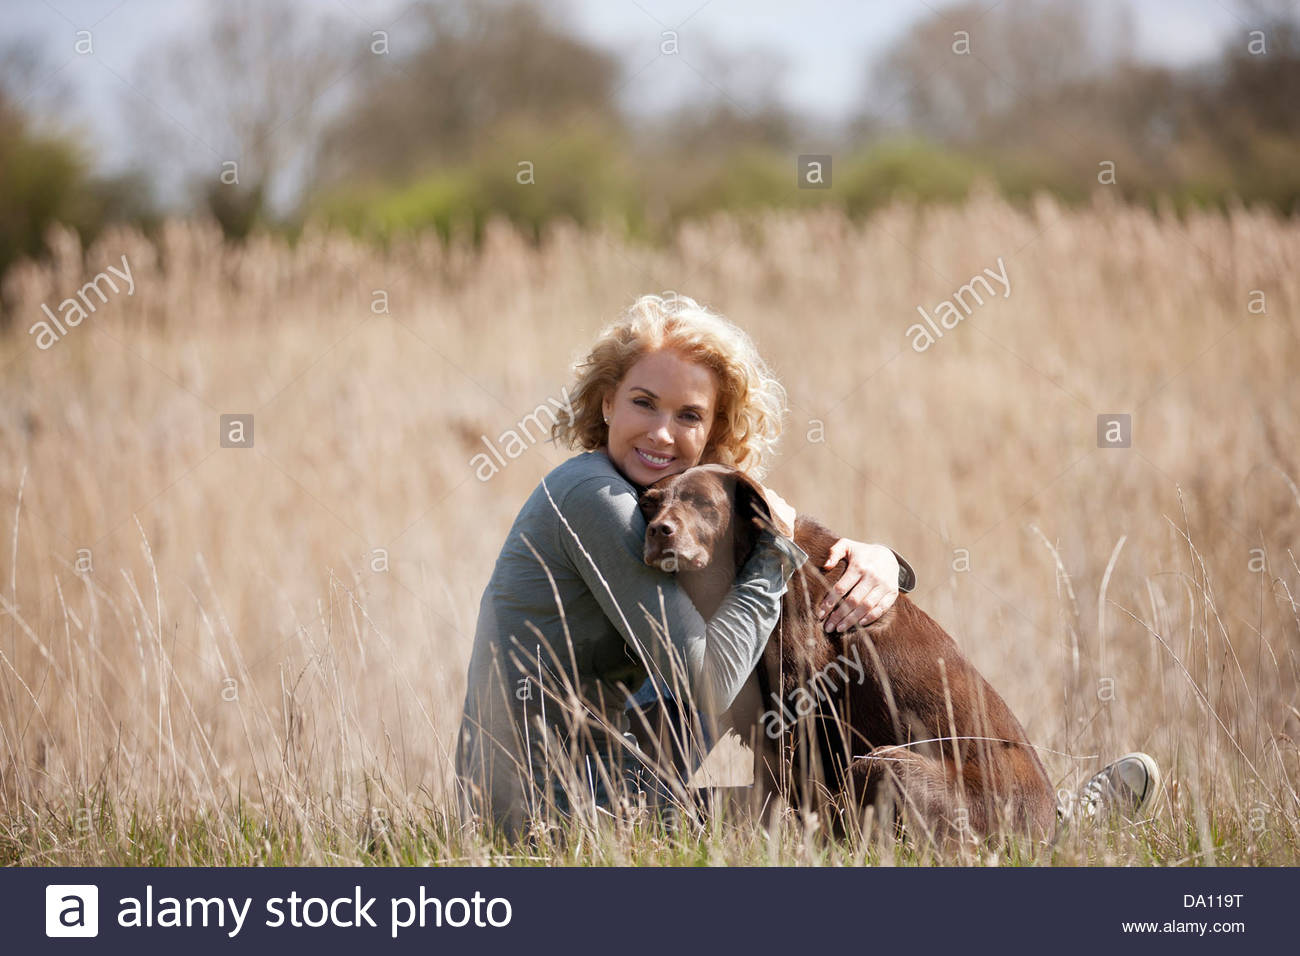 A mature woman sitting on the grass hugging her dog - Stock Image